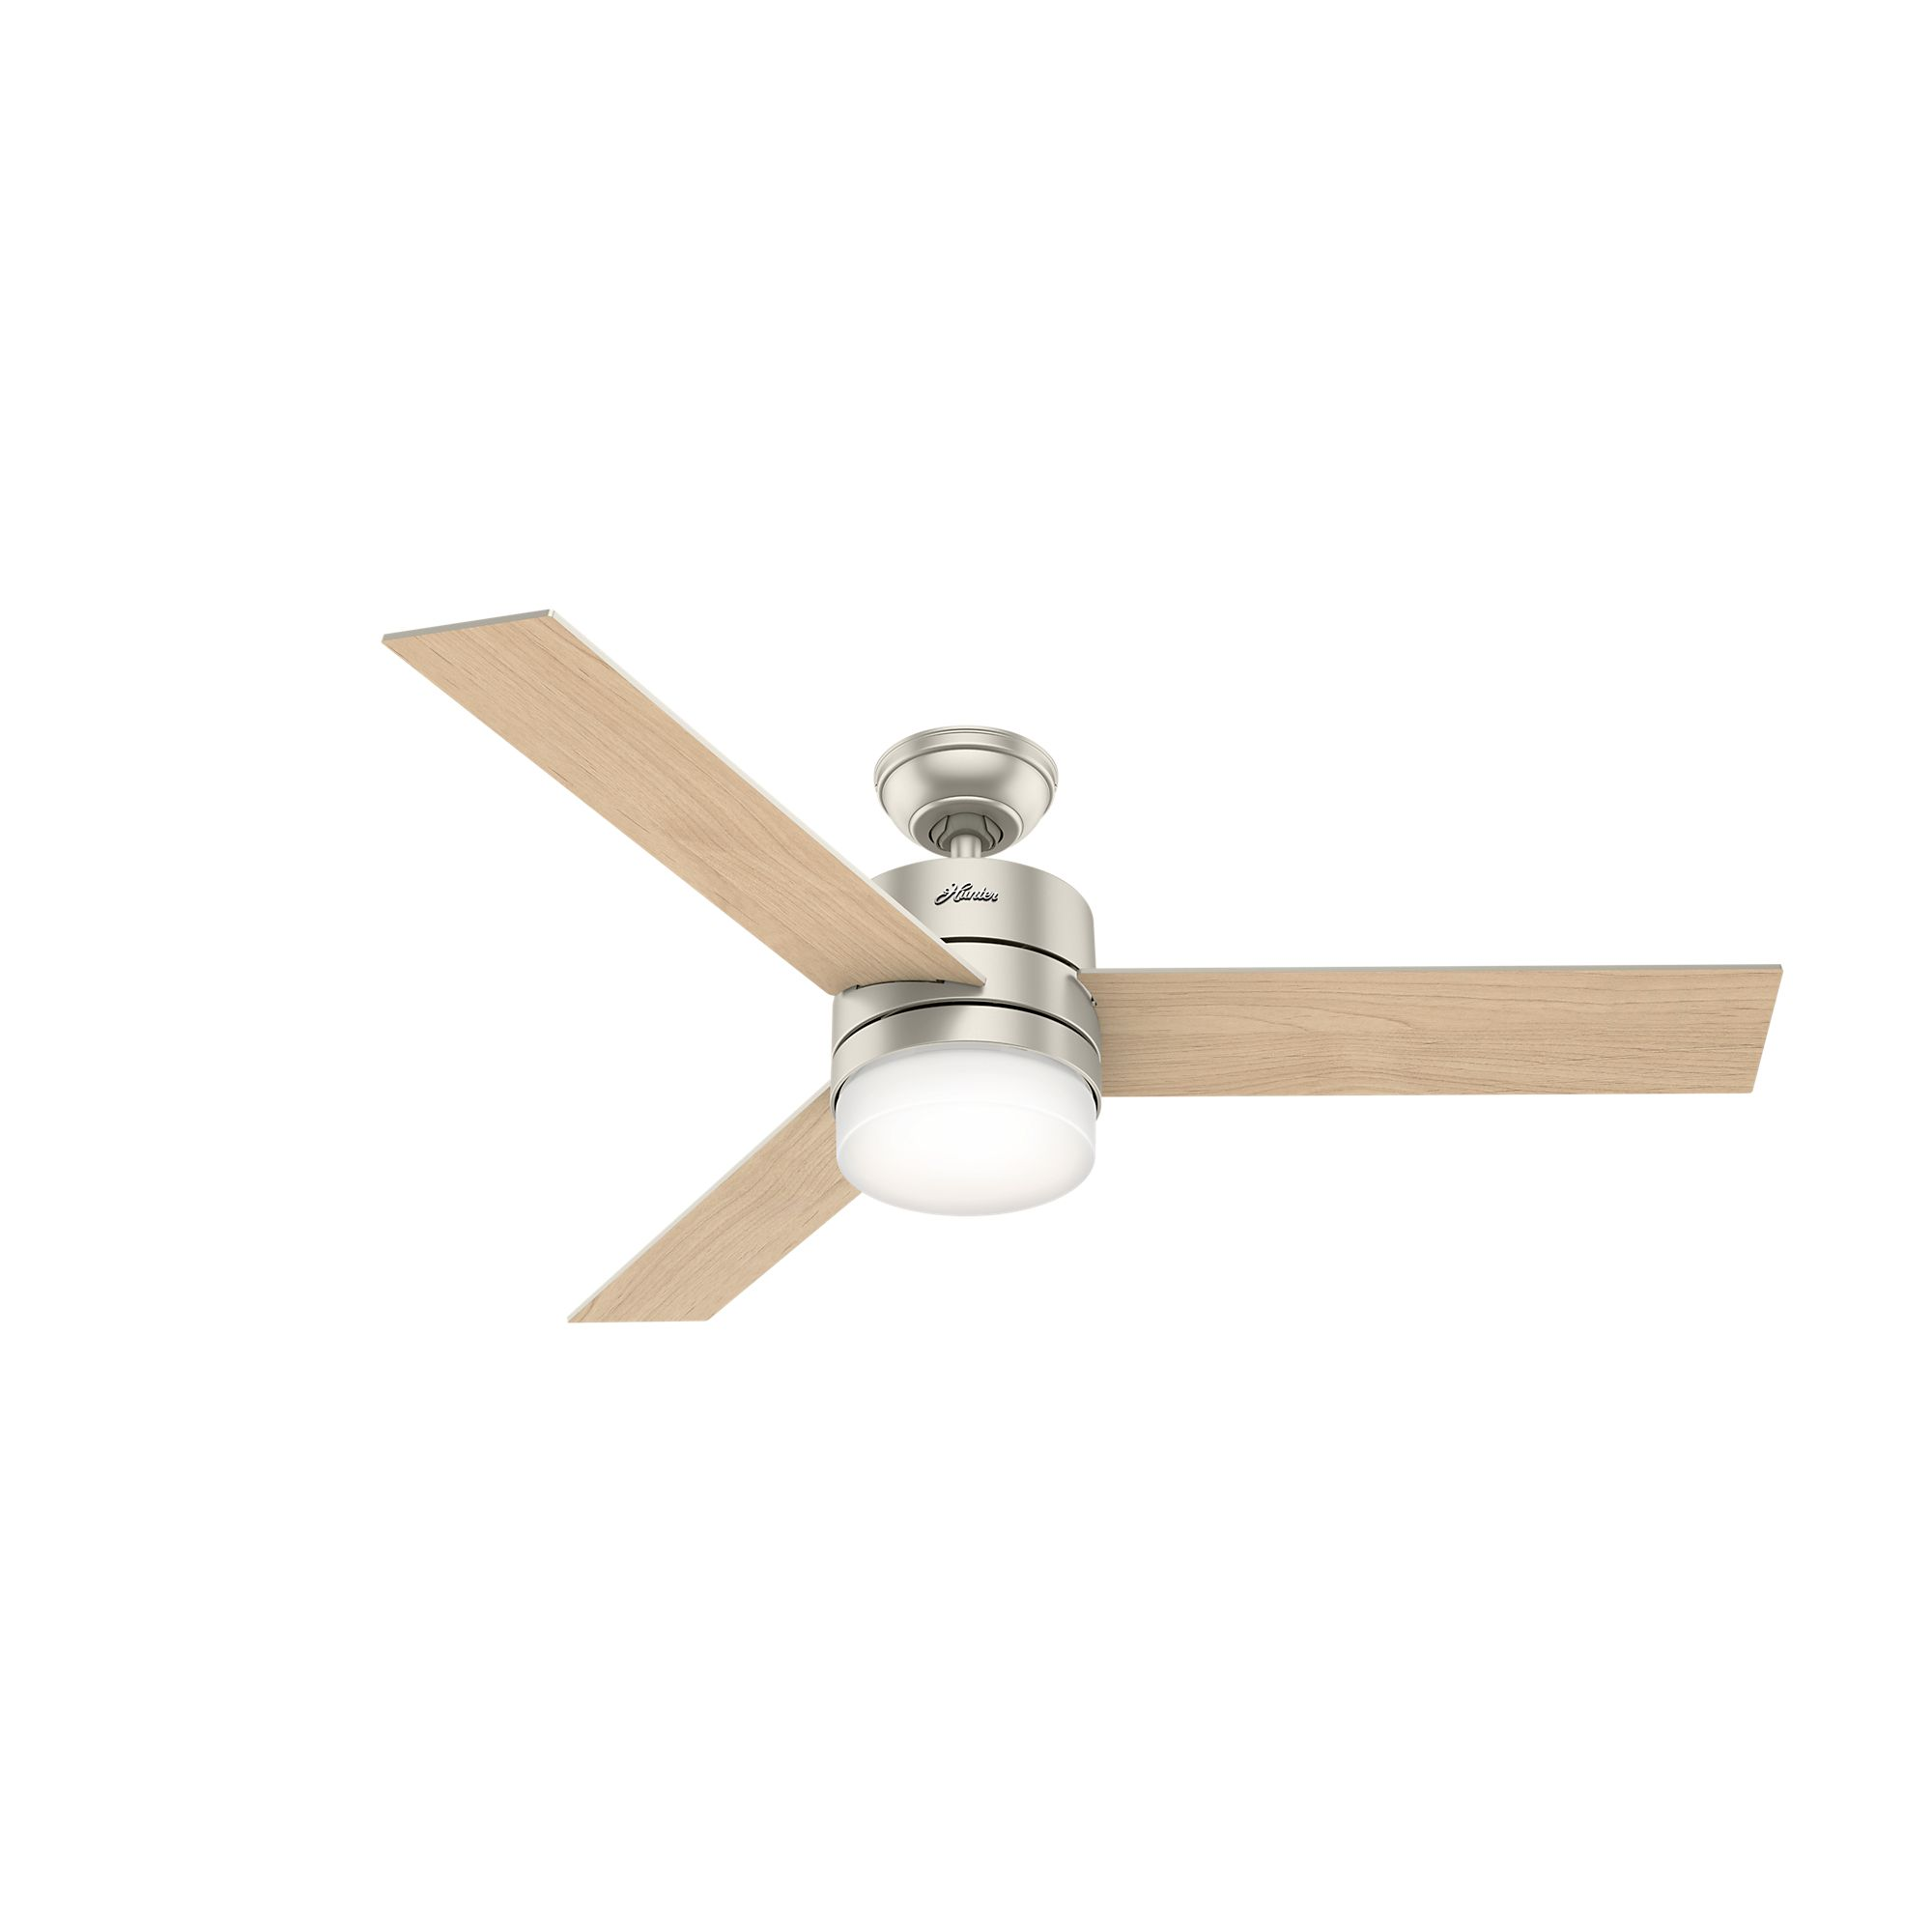 hight resolution of  eurella ceiling fan as you can also connect to a myriad of other smart home devices such as door locks garage doors smart plugs and window shades